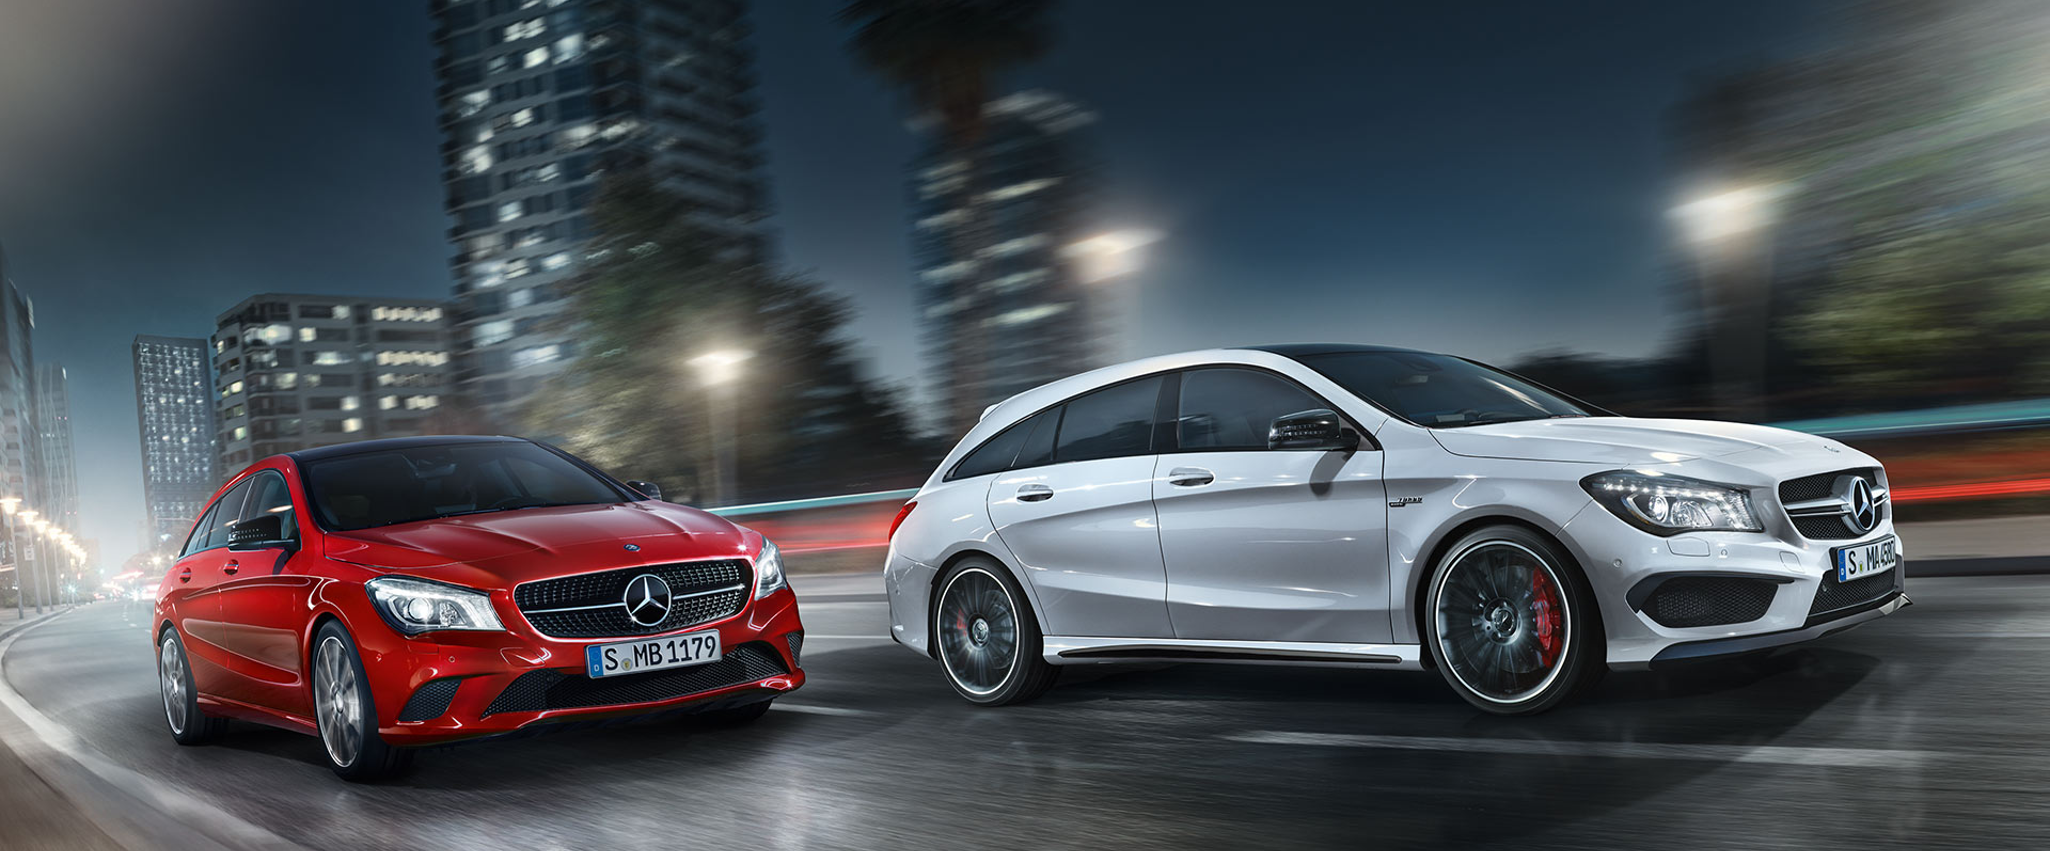 mercedes-benz-cla-x117_wallpaper_02_1920x1200_11-2014